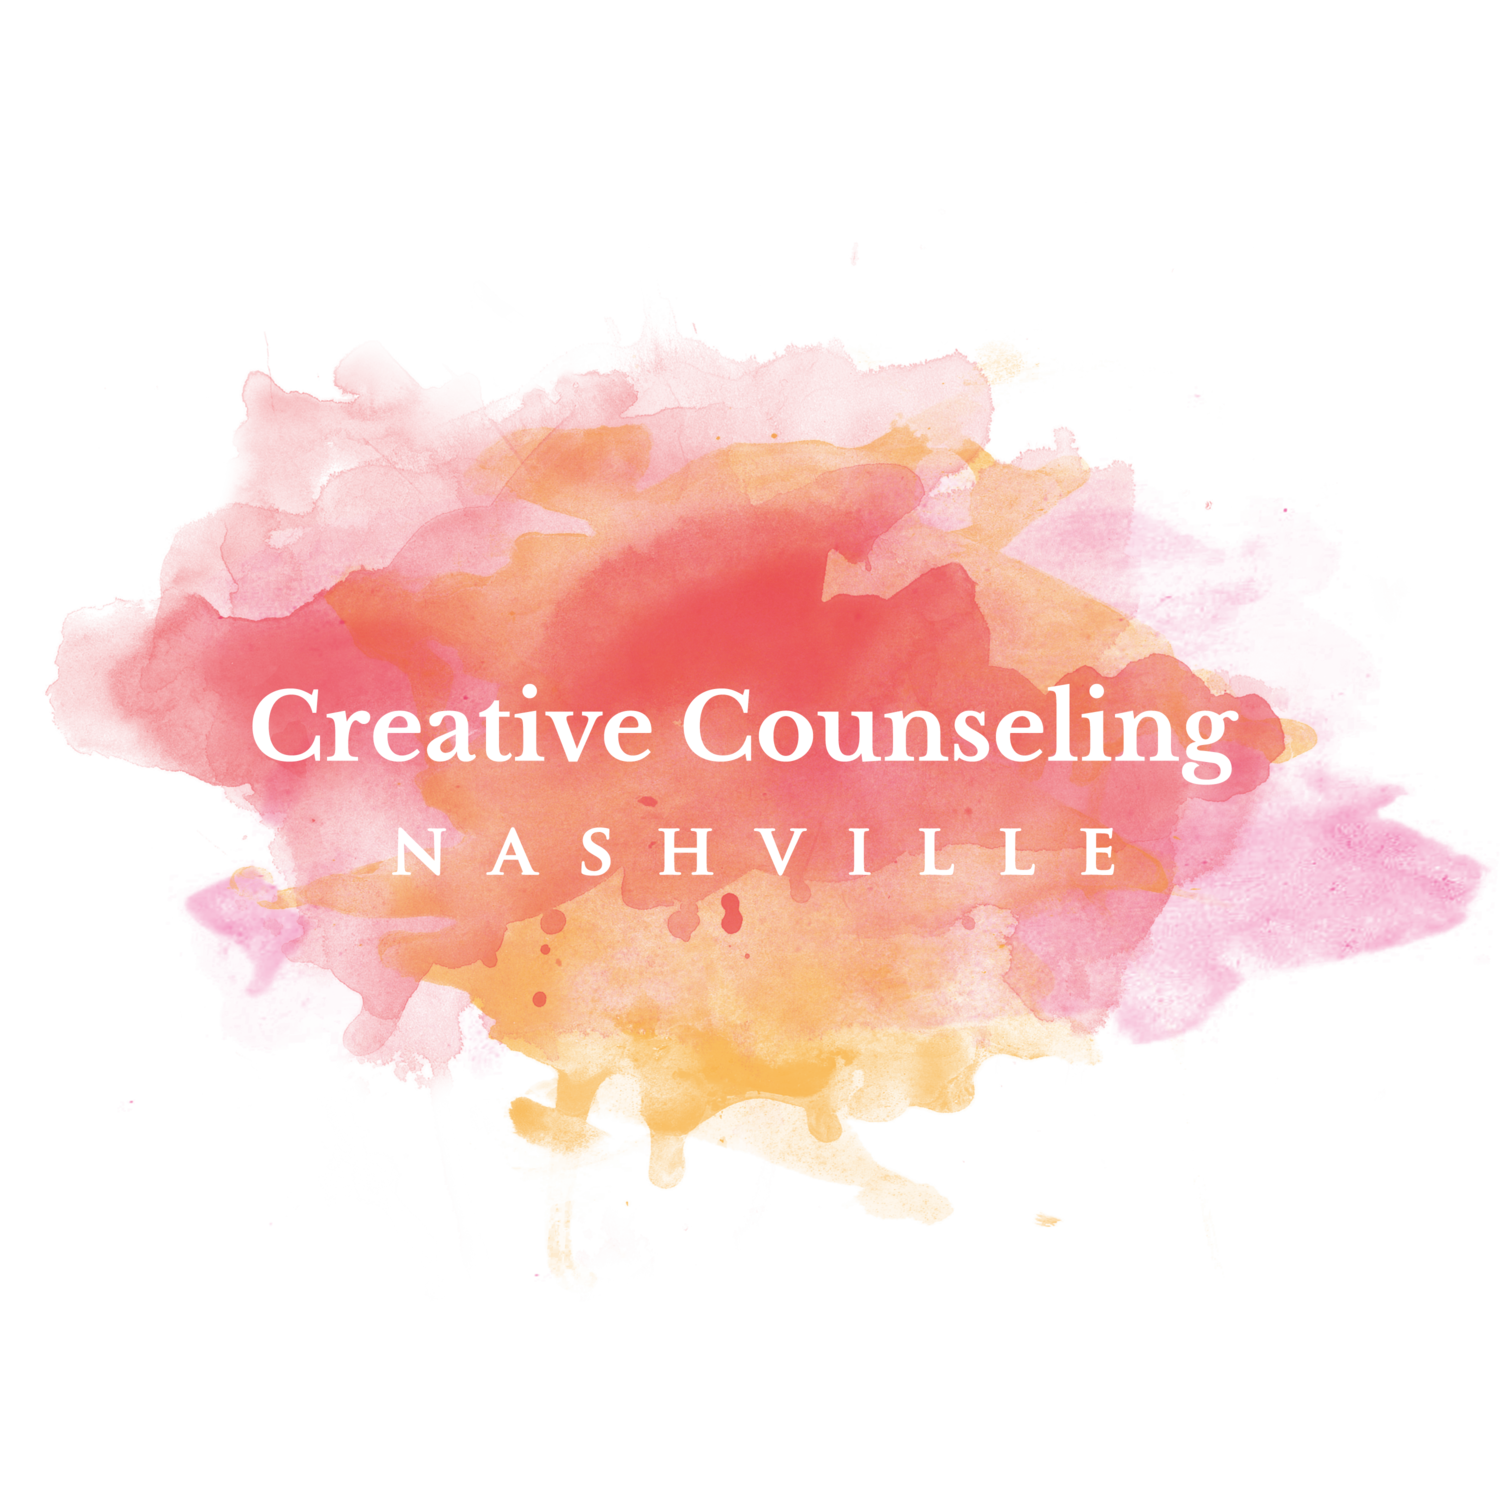 Creative Counseling Nashville